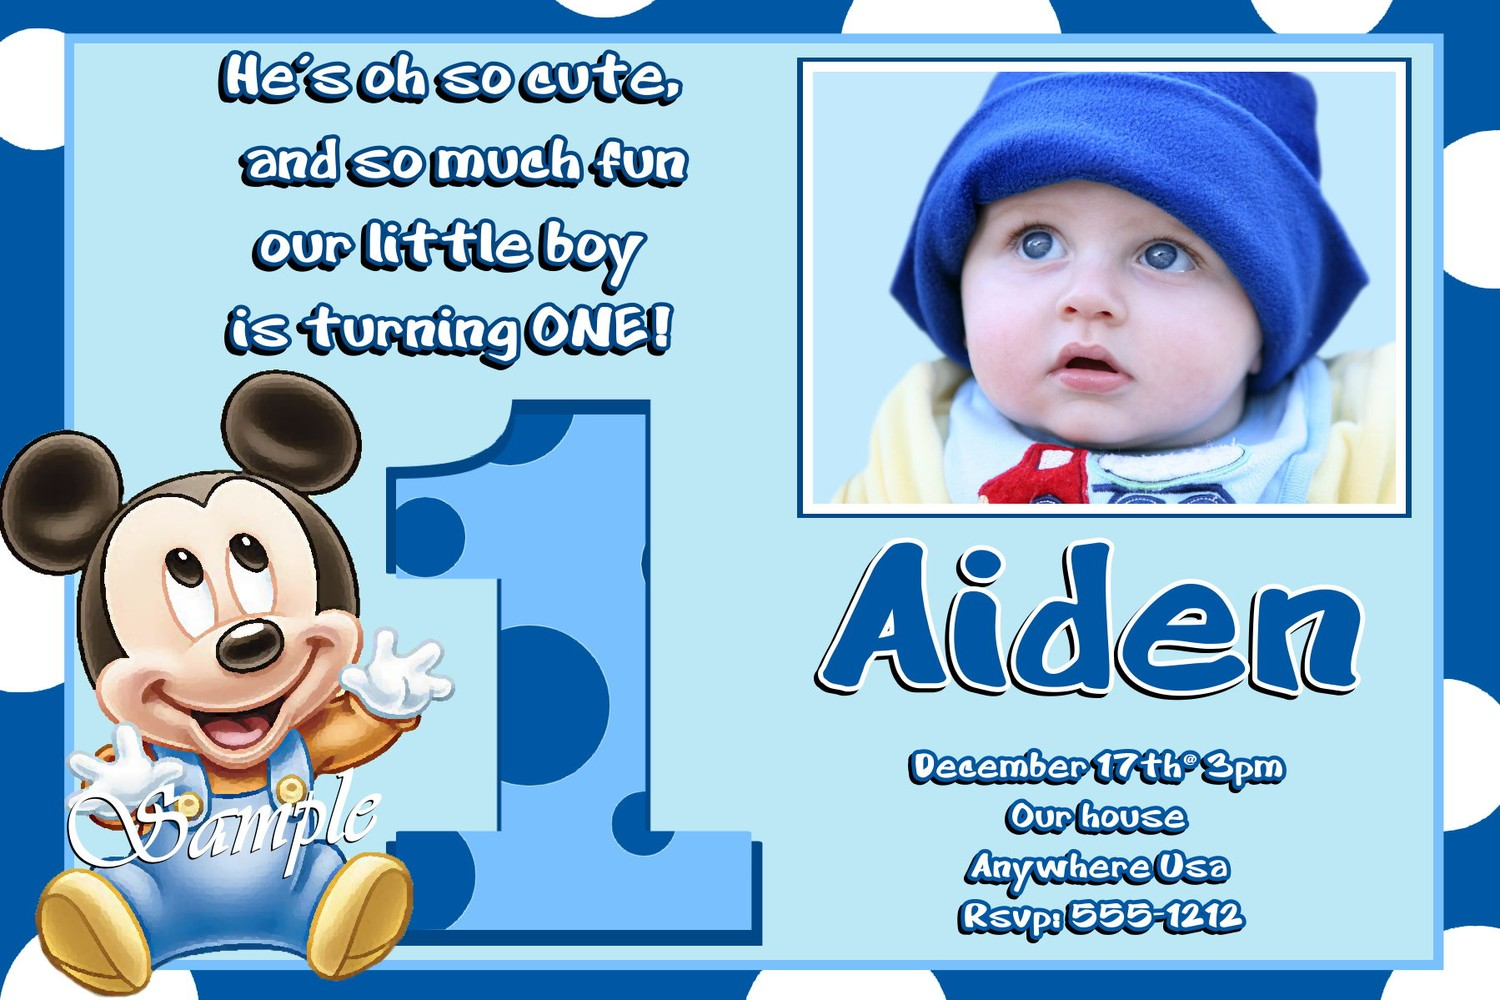 personalized photo first birthday invitations ; personalized_1st_birthday_invitations_lovely_personalized_1st_0